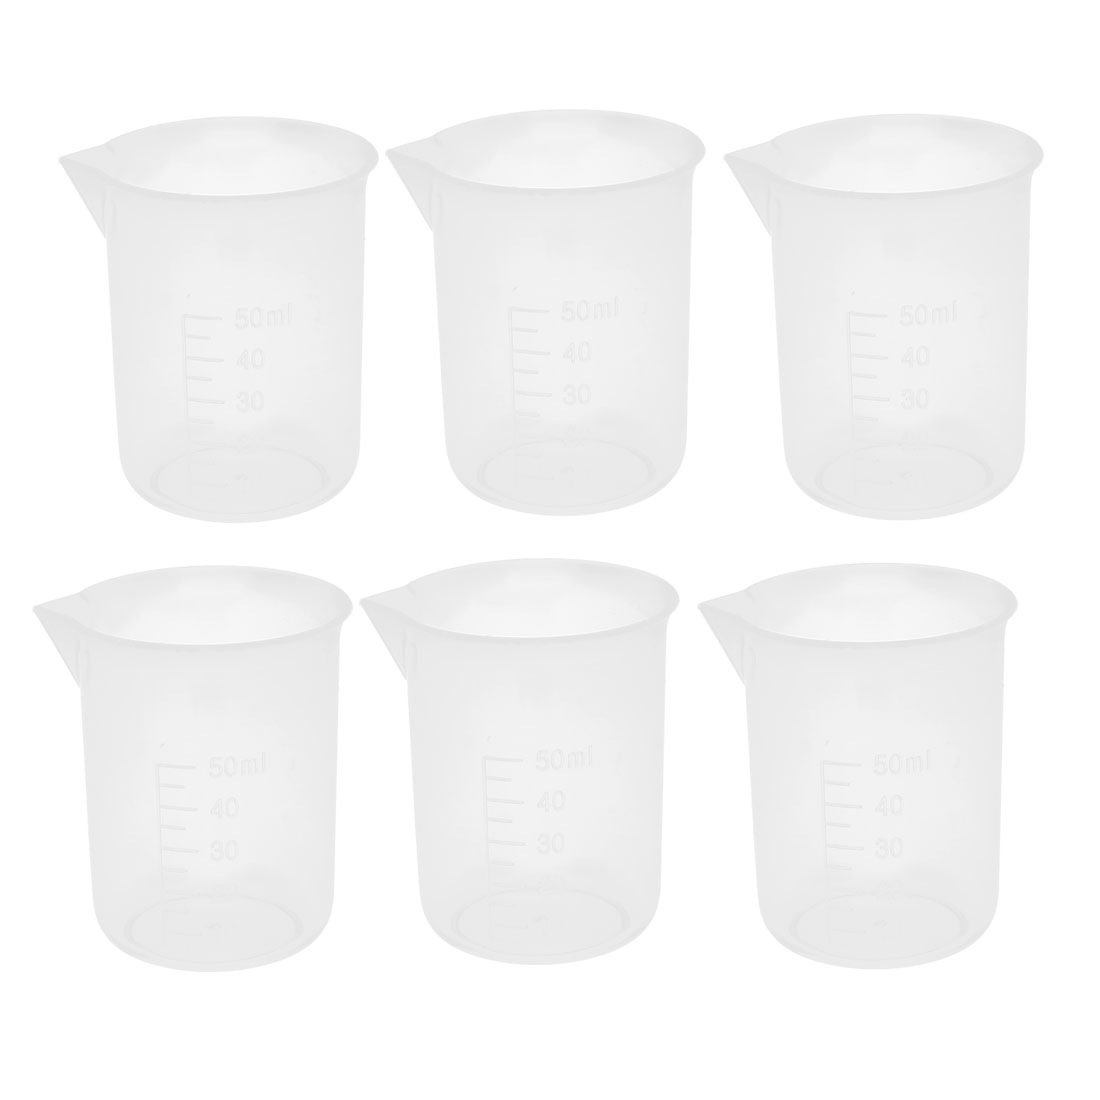 Clear Plastic Measuring Cup Beaker Laboratory Set 50ml Capacity 6 Pcs